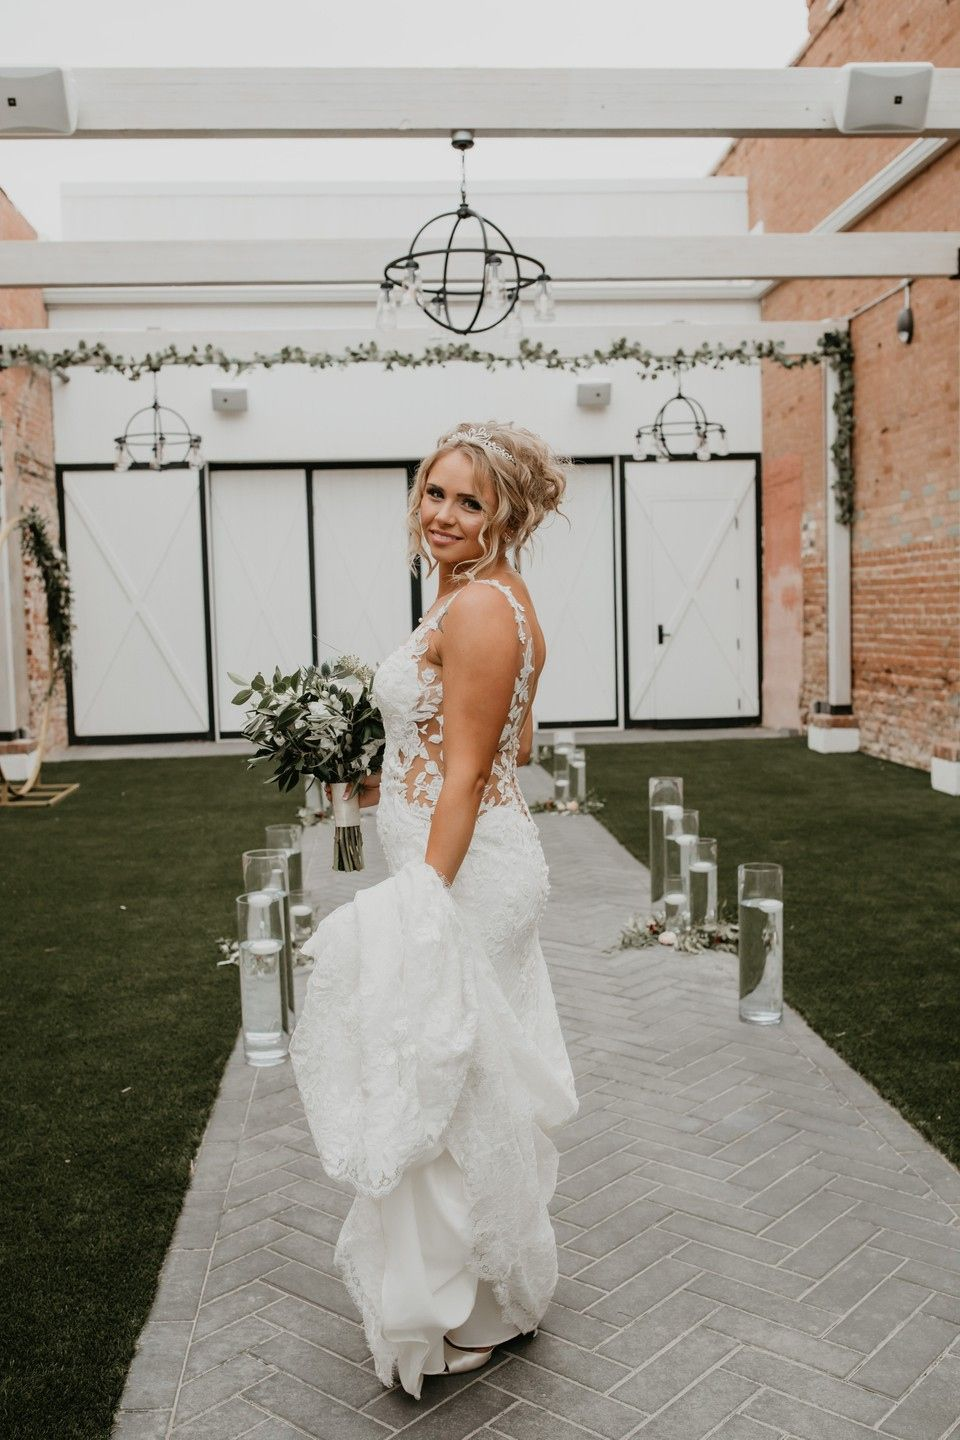 MOROCCO gown by Pronovias at LUV Bridal in 2020 Wedding